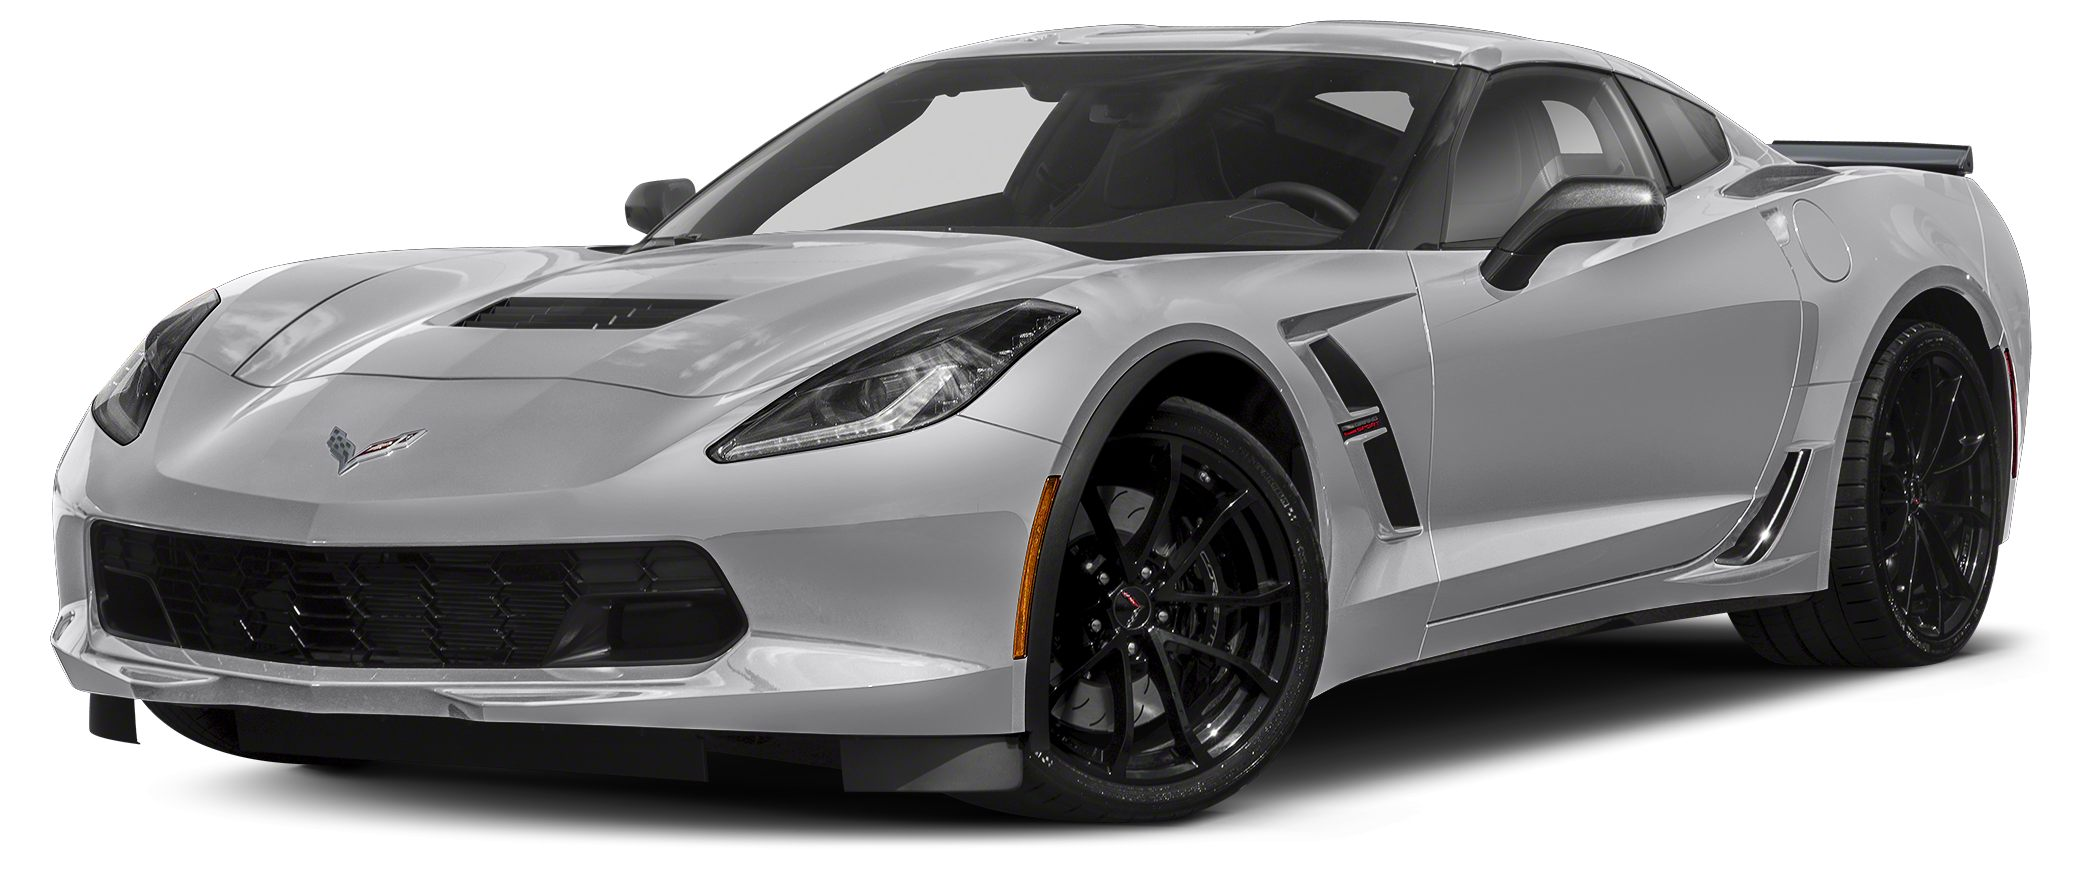 2018 Chevrolet Corvette Grand Sport Miles 0Color Blade Silver Metallic Stock CO8033 VIN 1G1Y